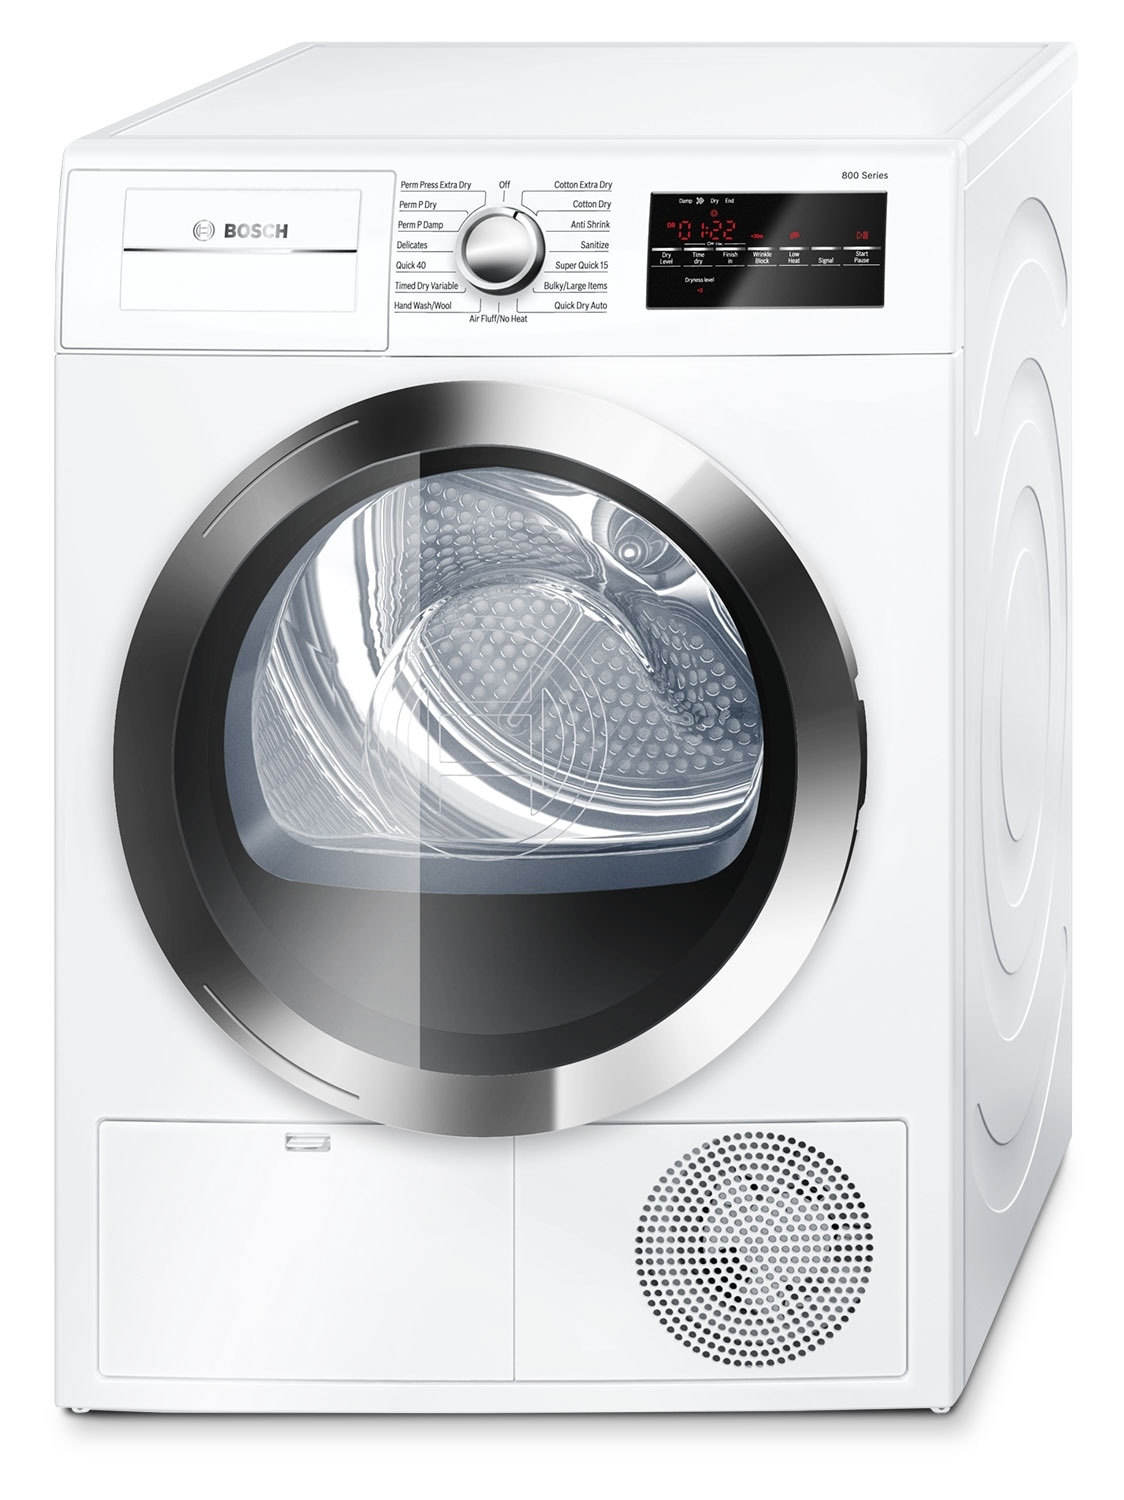 Washers and Dryers - Bosch White and Stainless Steel Electric Dryer (4 Cu. Ft.) - WTG86402UC